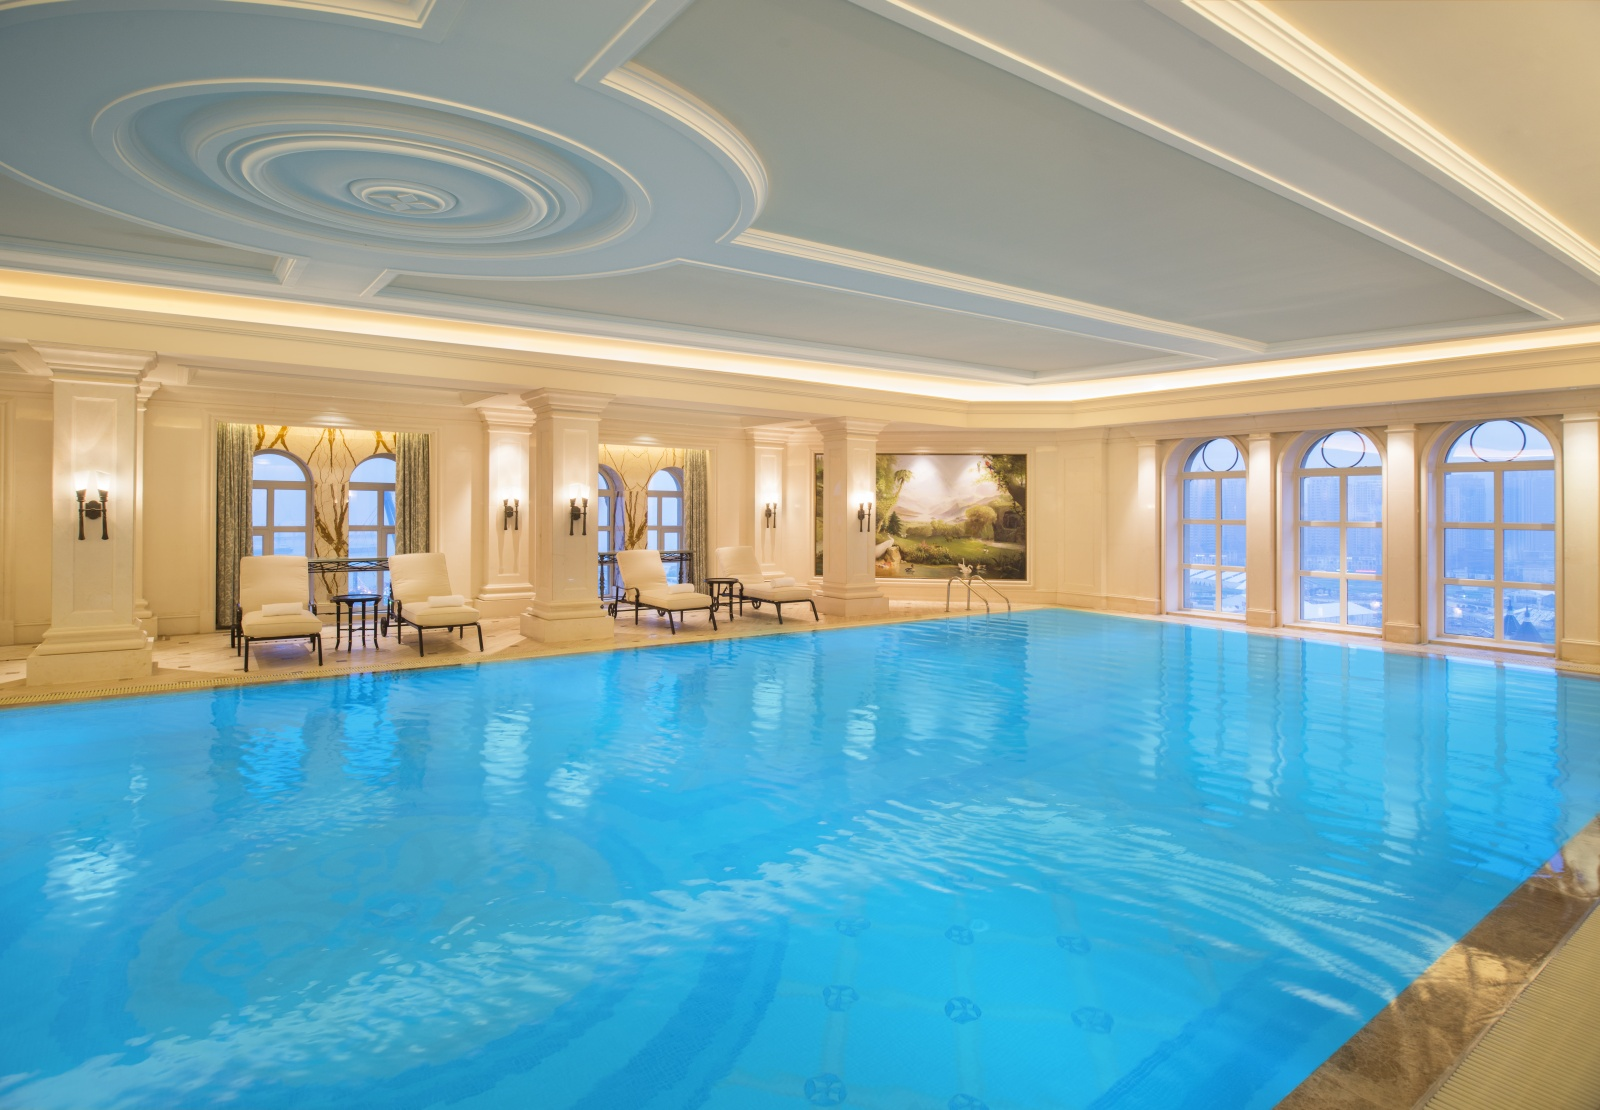 The castle hotel in dalian - Luxury scottish hotels with swimming pools ...